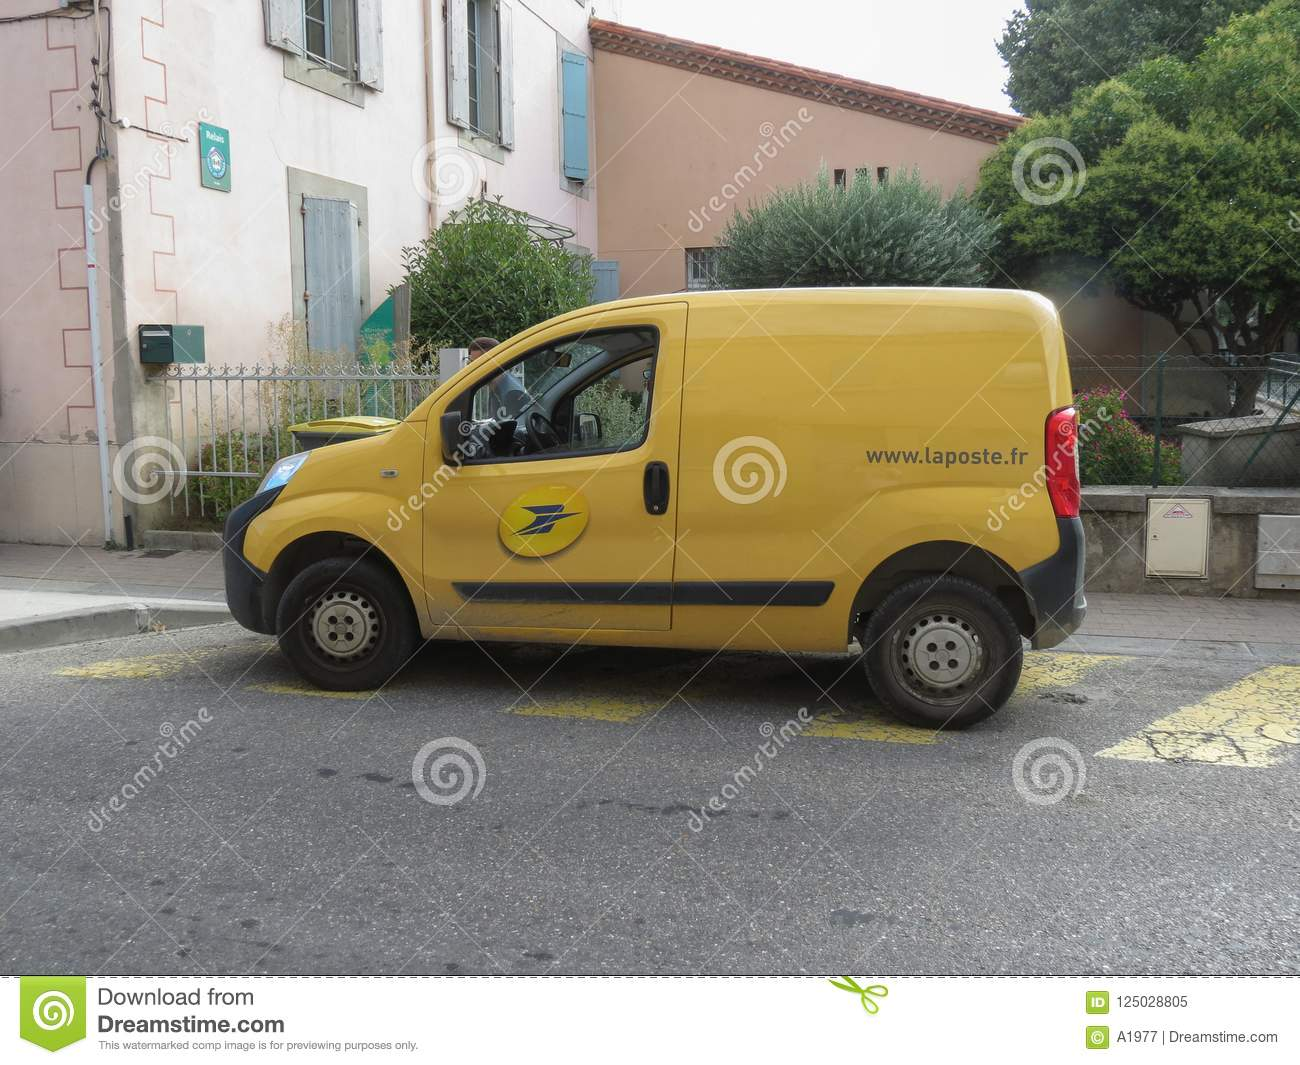 7aa758b392 La Poste National Mail Service Yellow Van Editorial Image - Image of ...